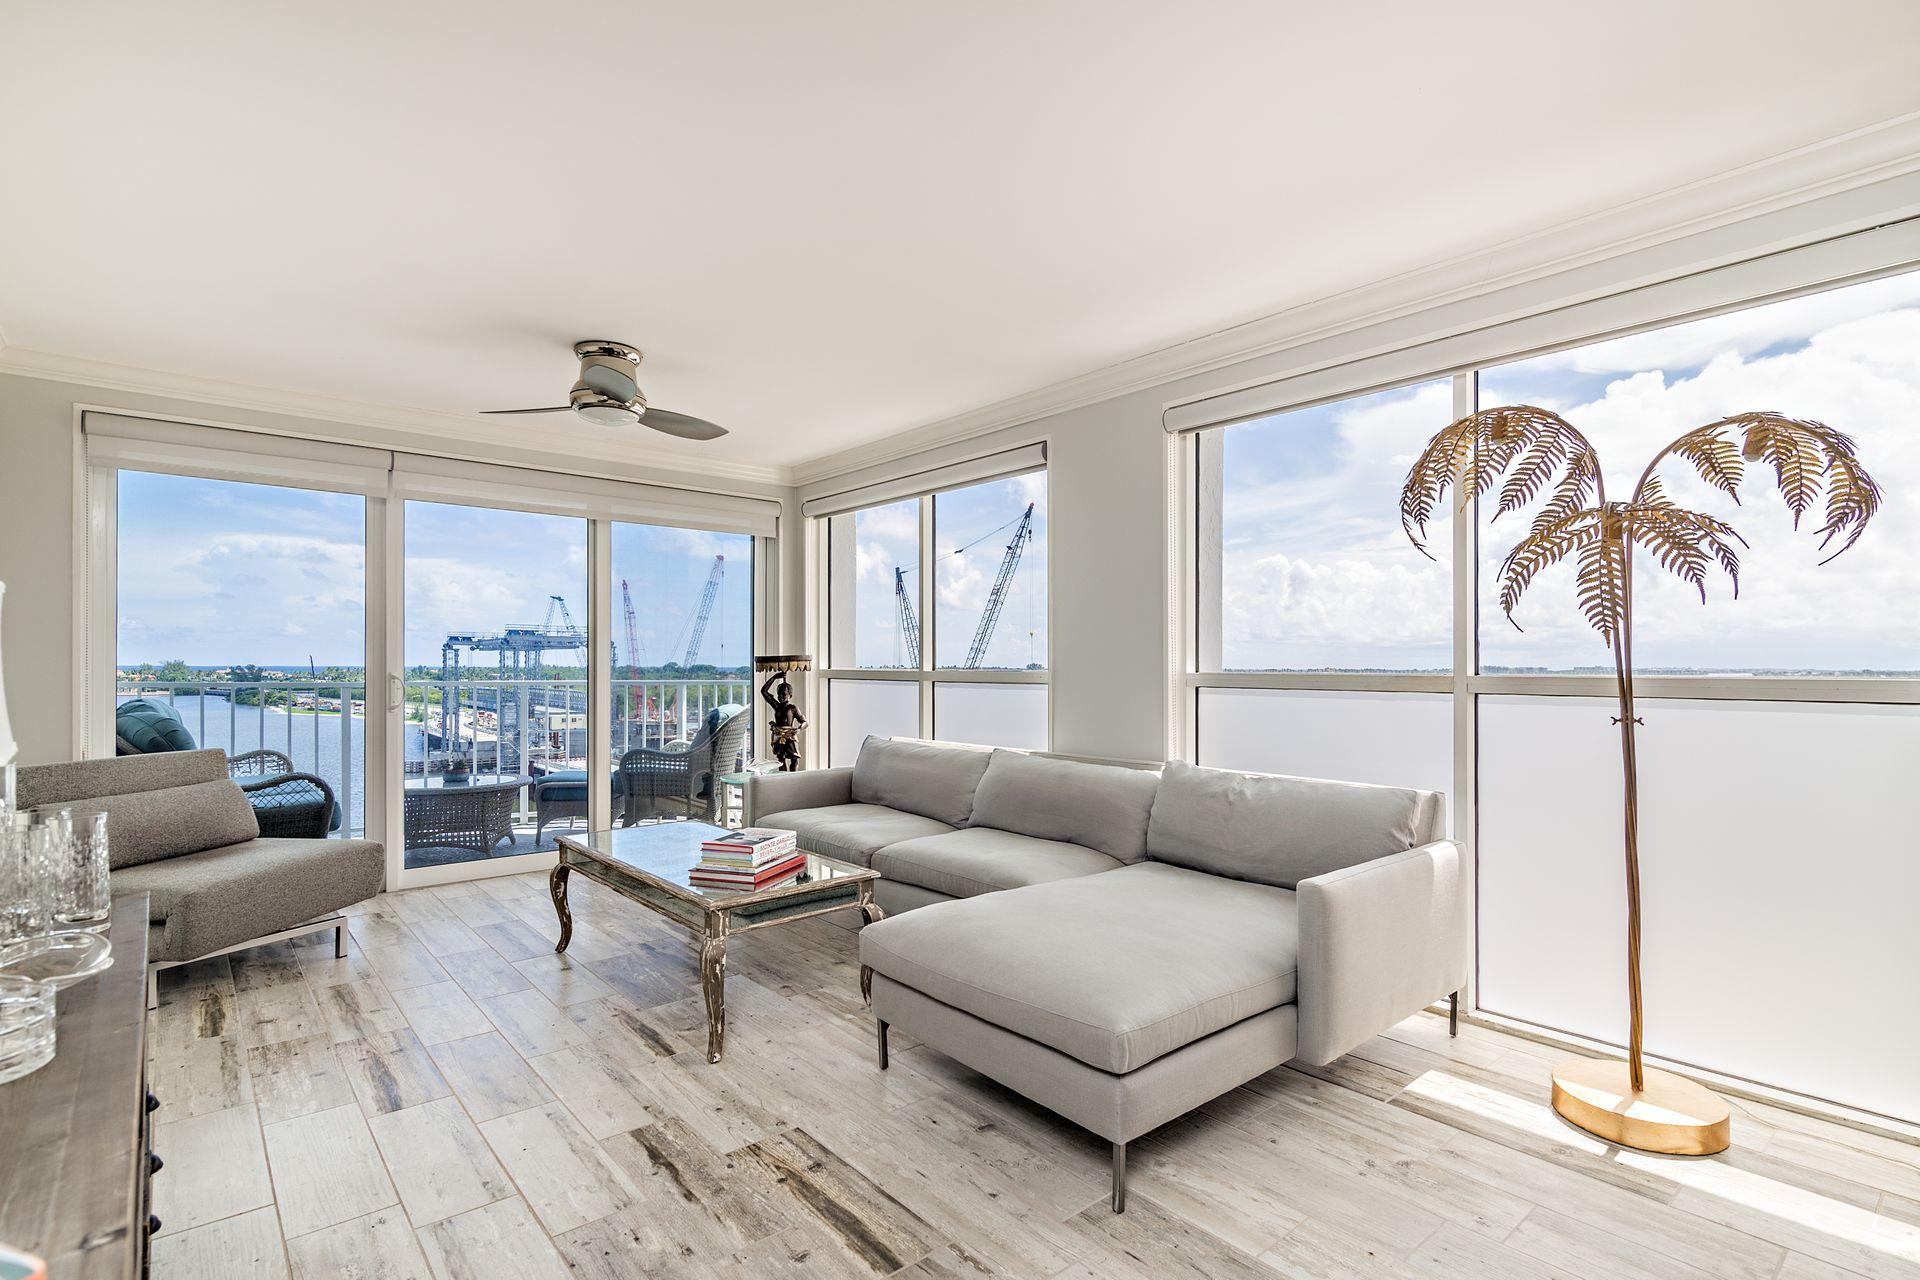 Home for sale in Harbor Towers Marina West Palm Beach Florida